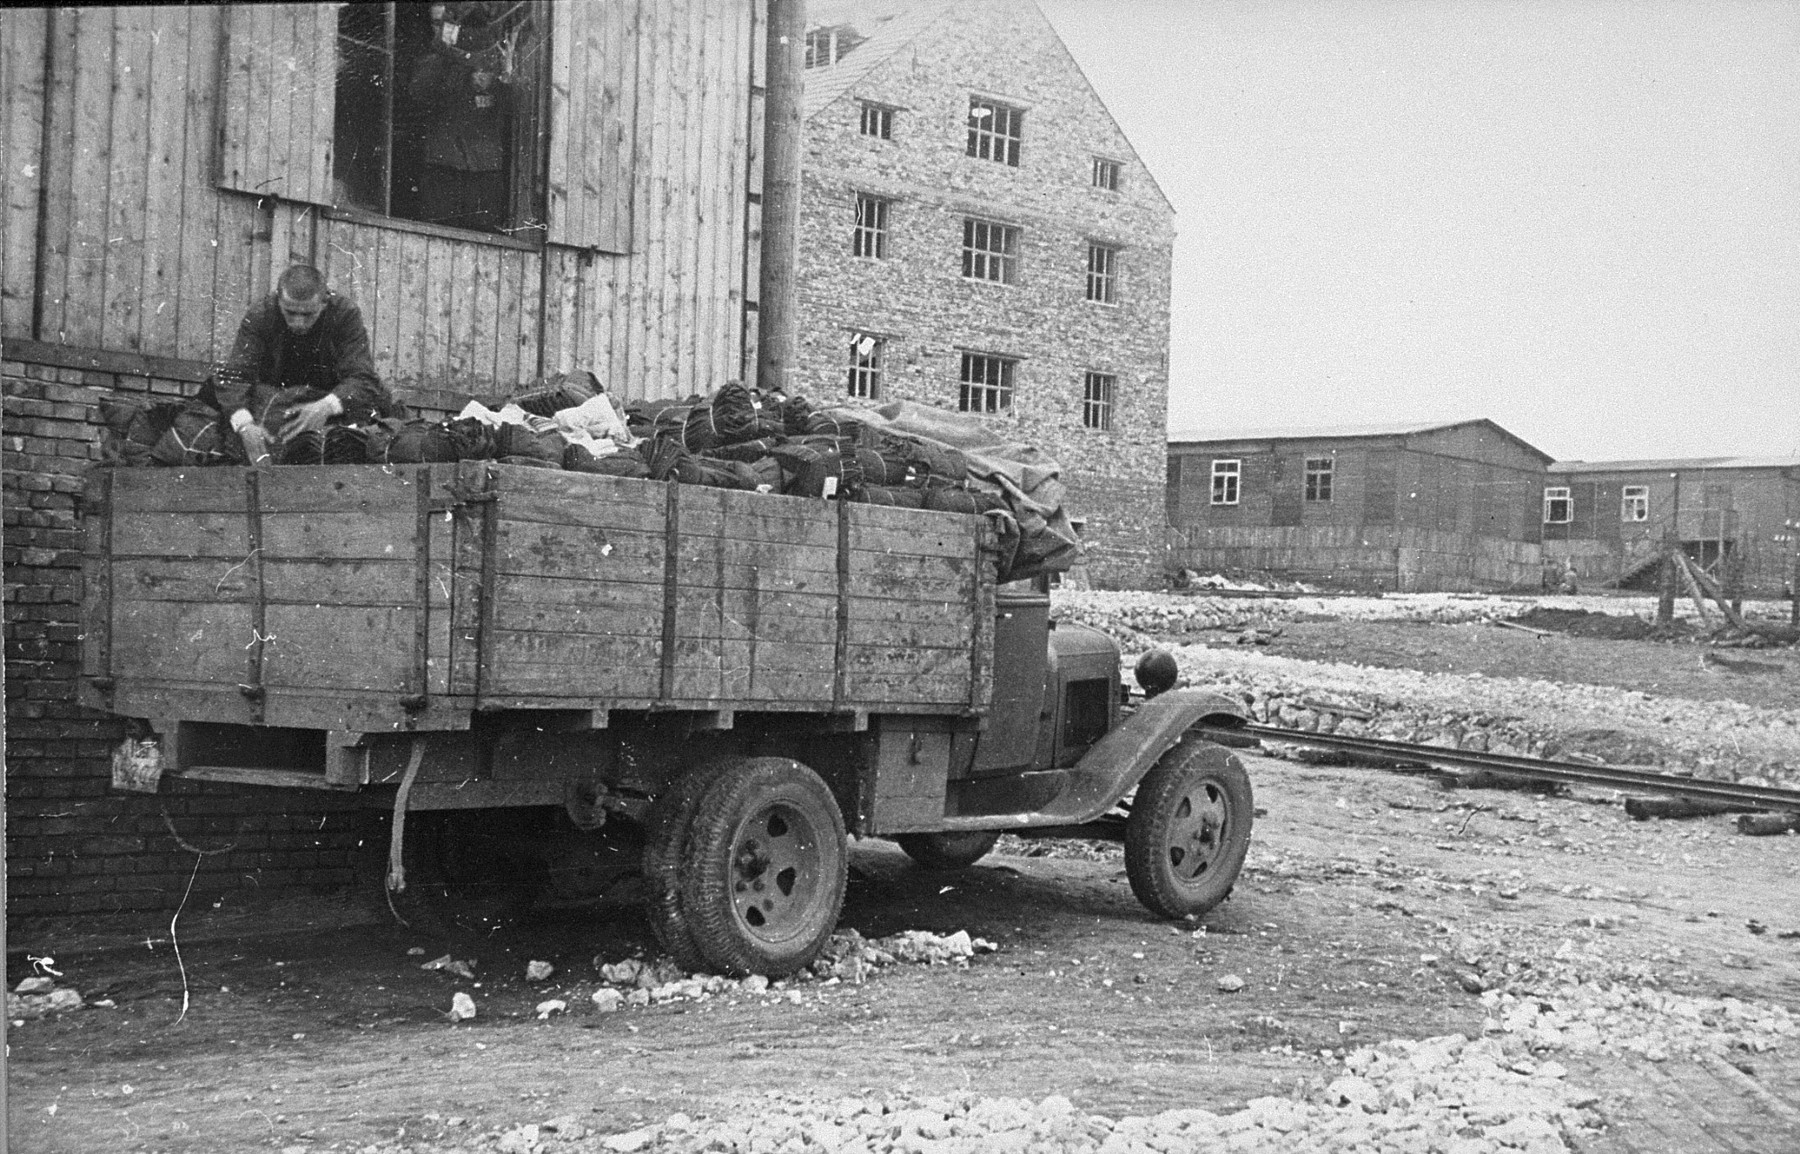 Jewish prisoners load textiles onto a truck from a Madritch factory warehouse.  The Madritch factory utilized concentration camp labor in Plaszow to produce uniforms for the German army.